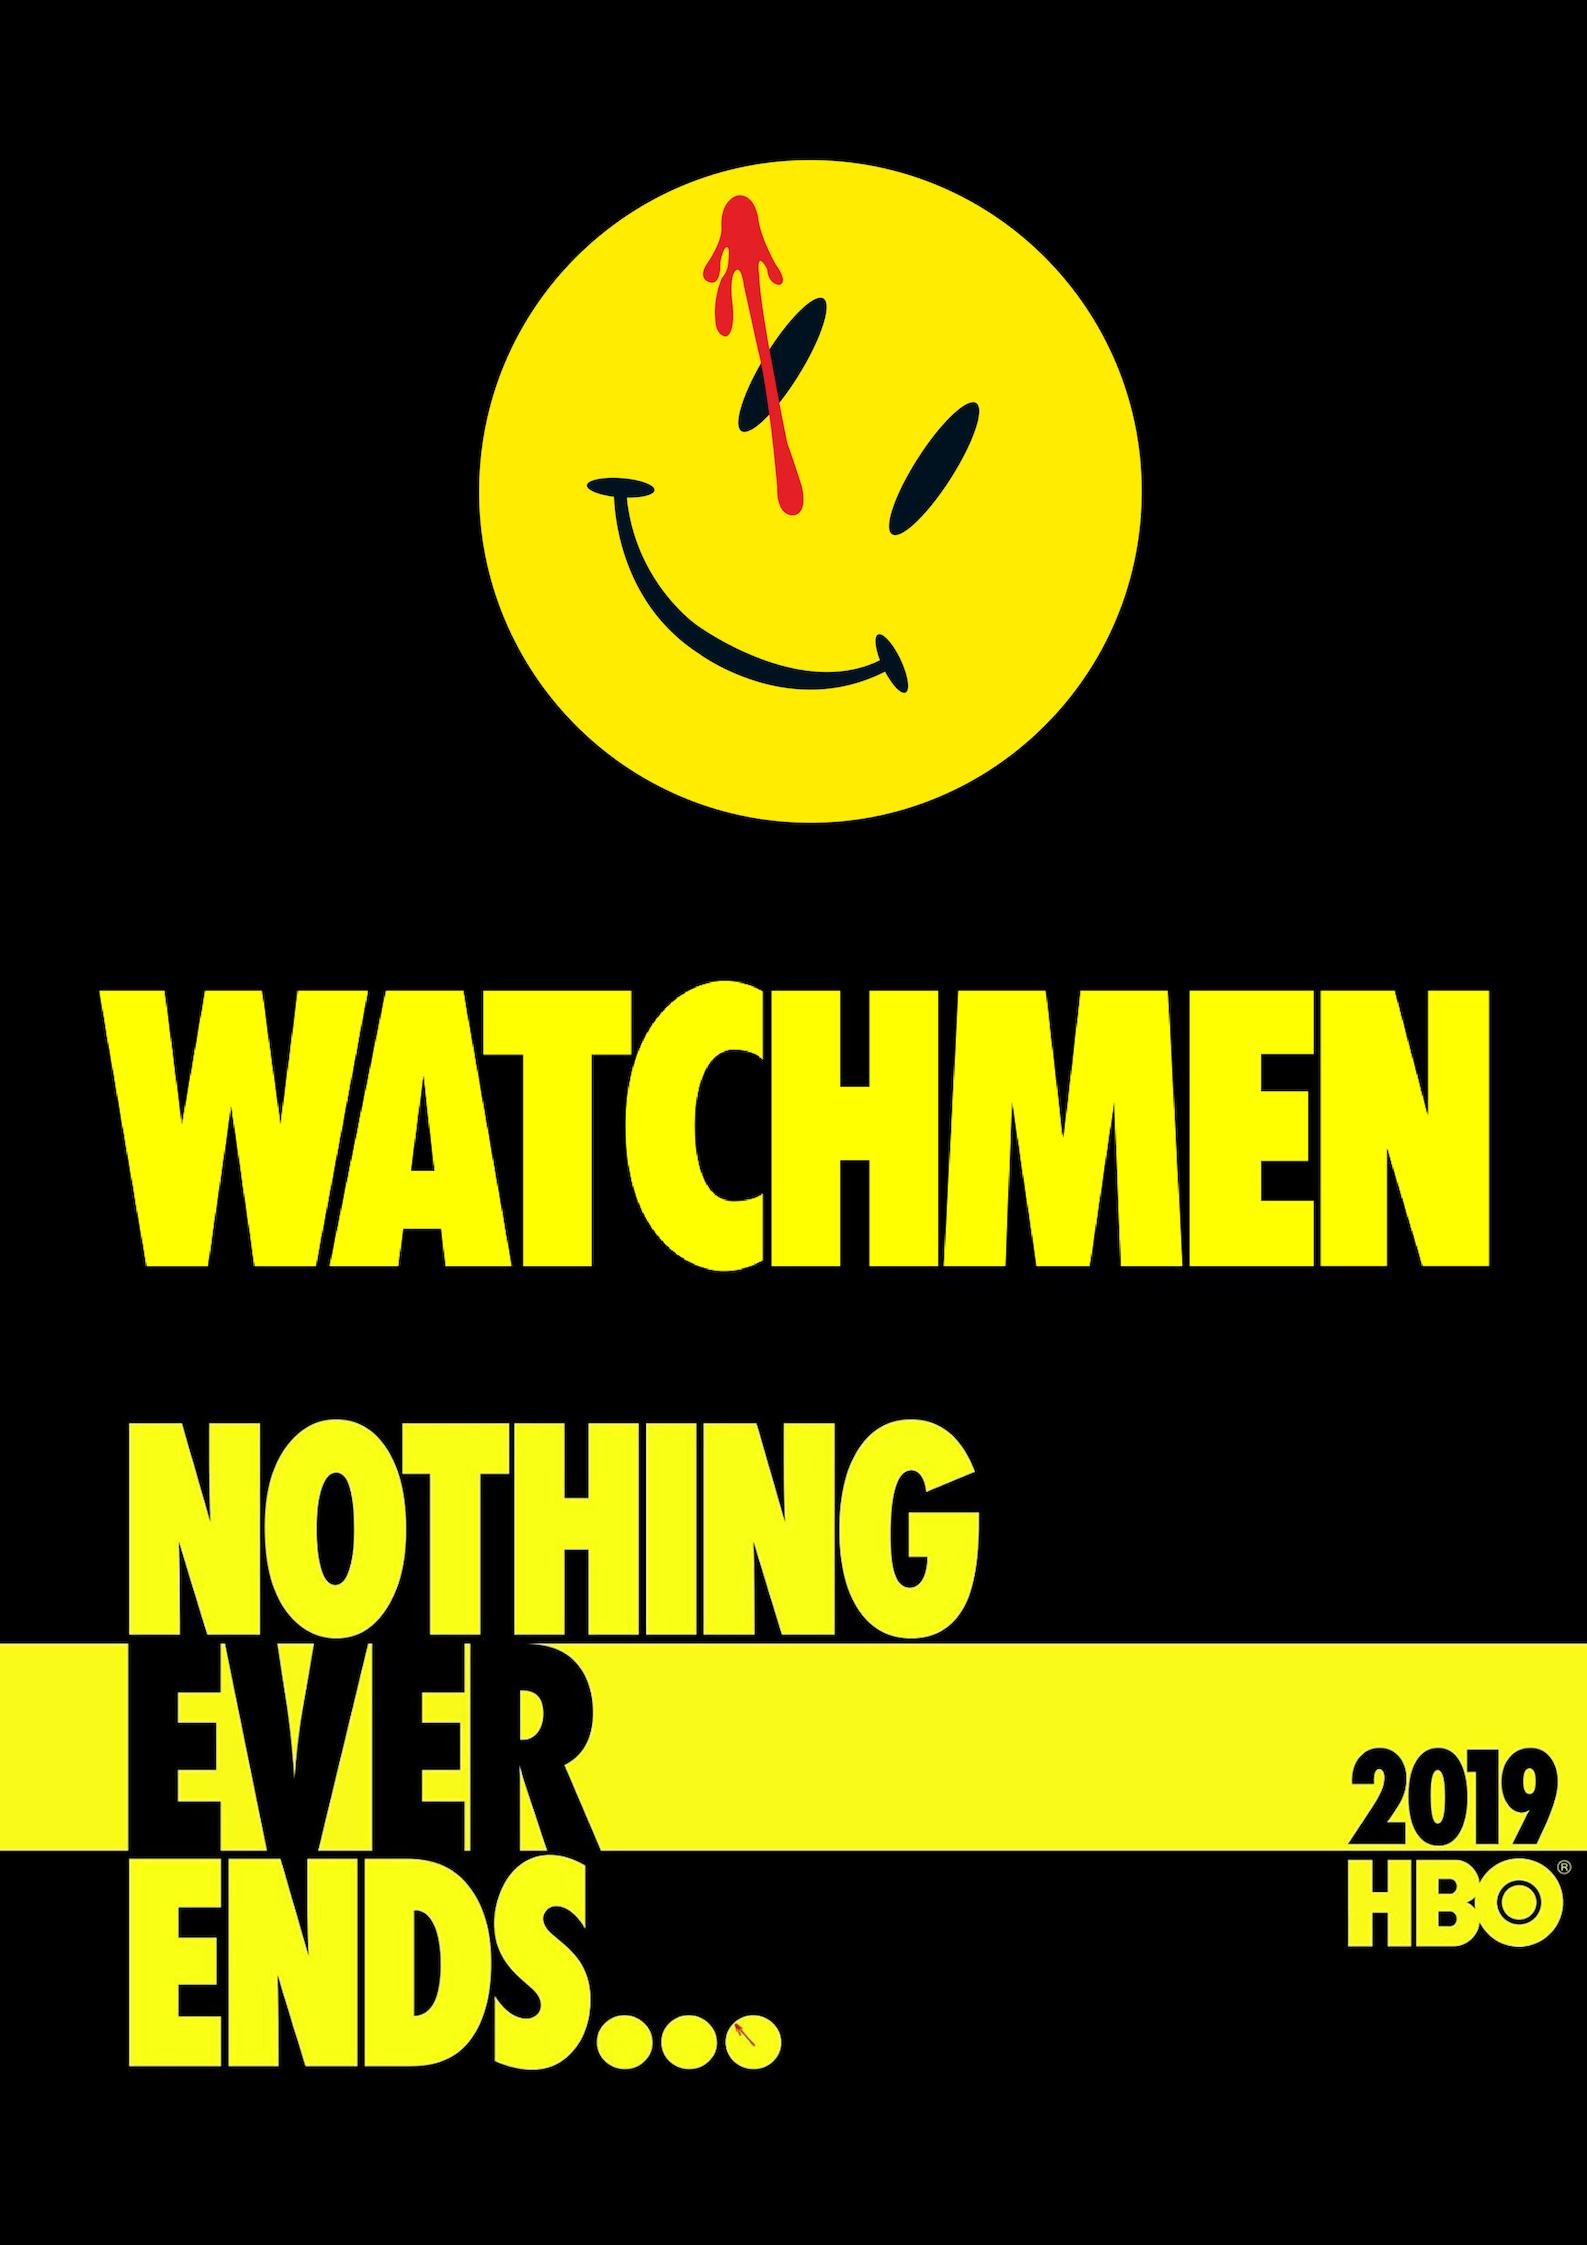 Hbo Watchmen Series Compared To Bible By Producer Damon Lindelof